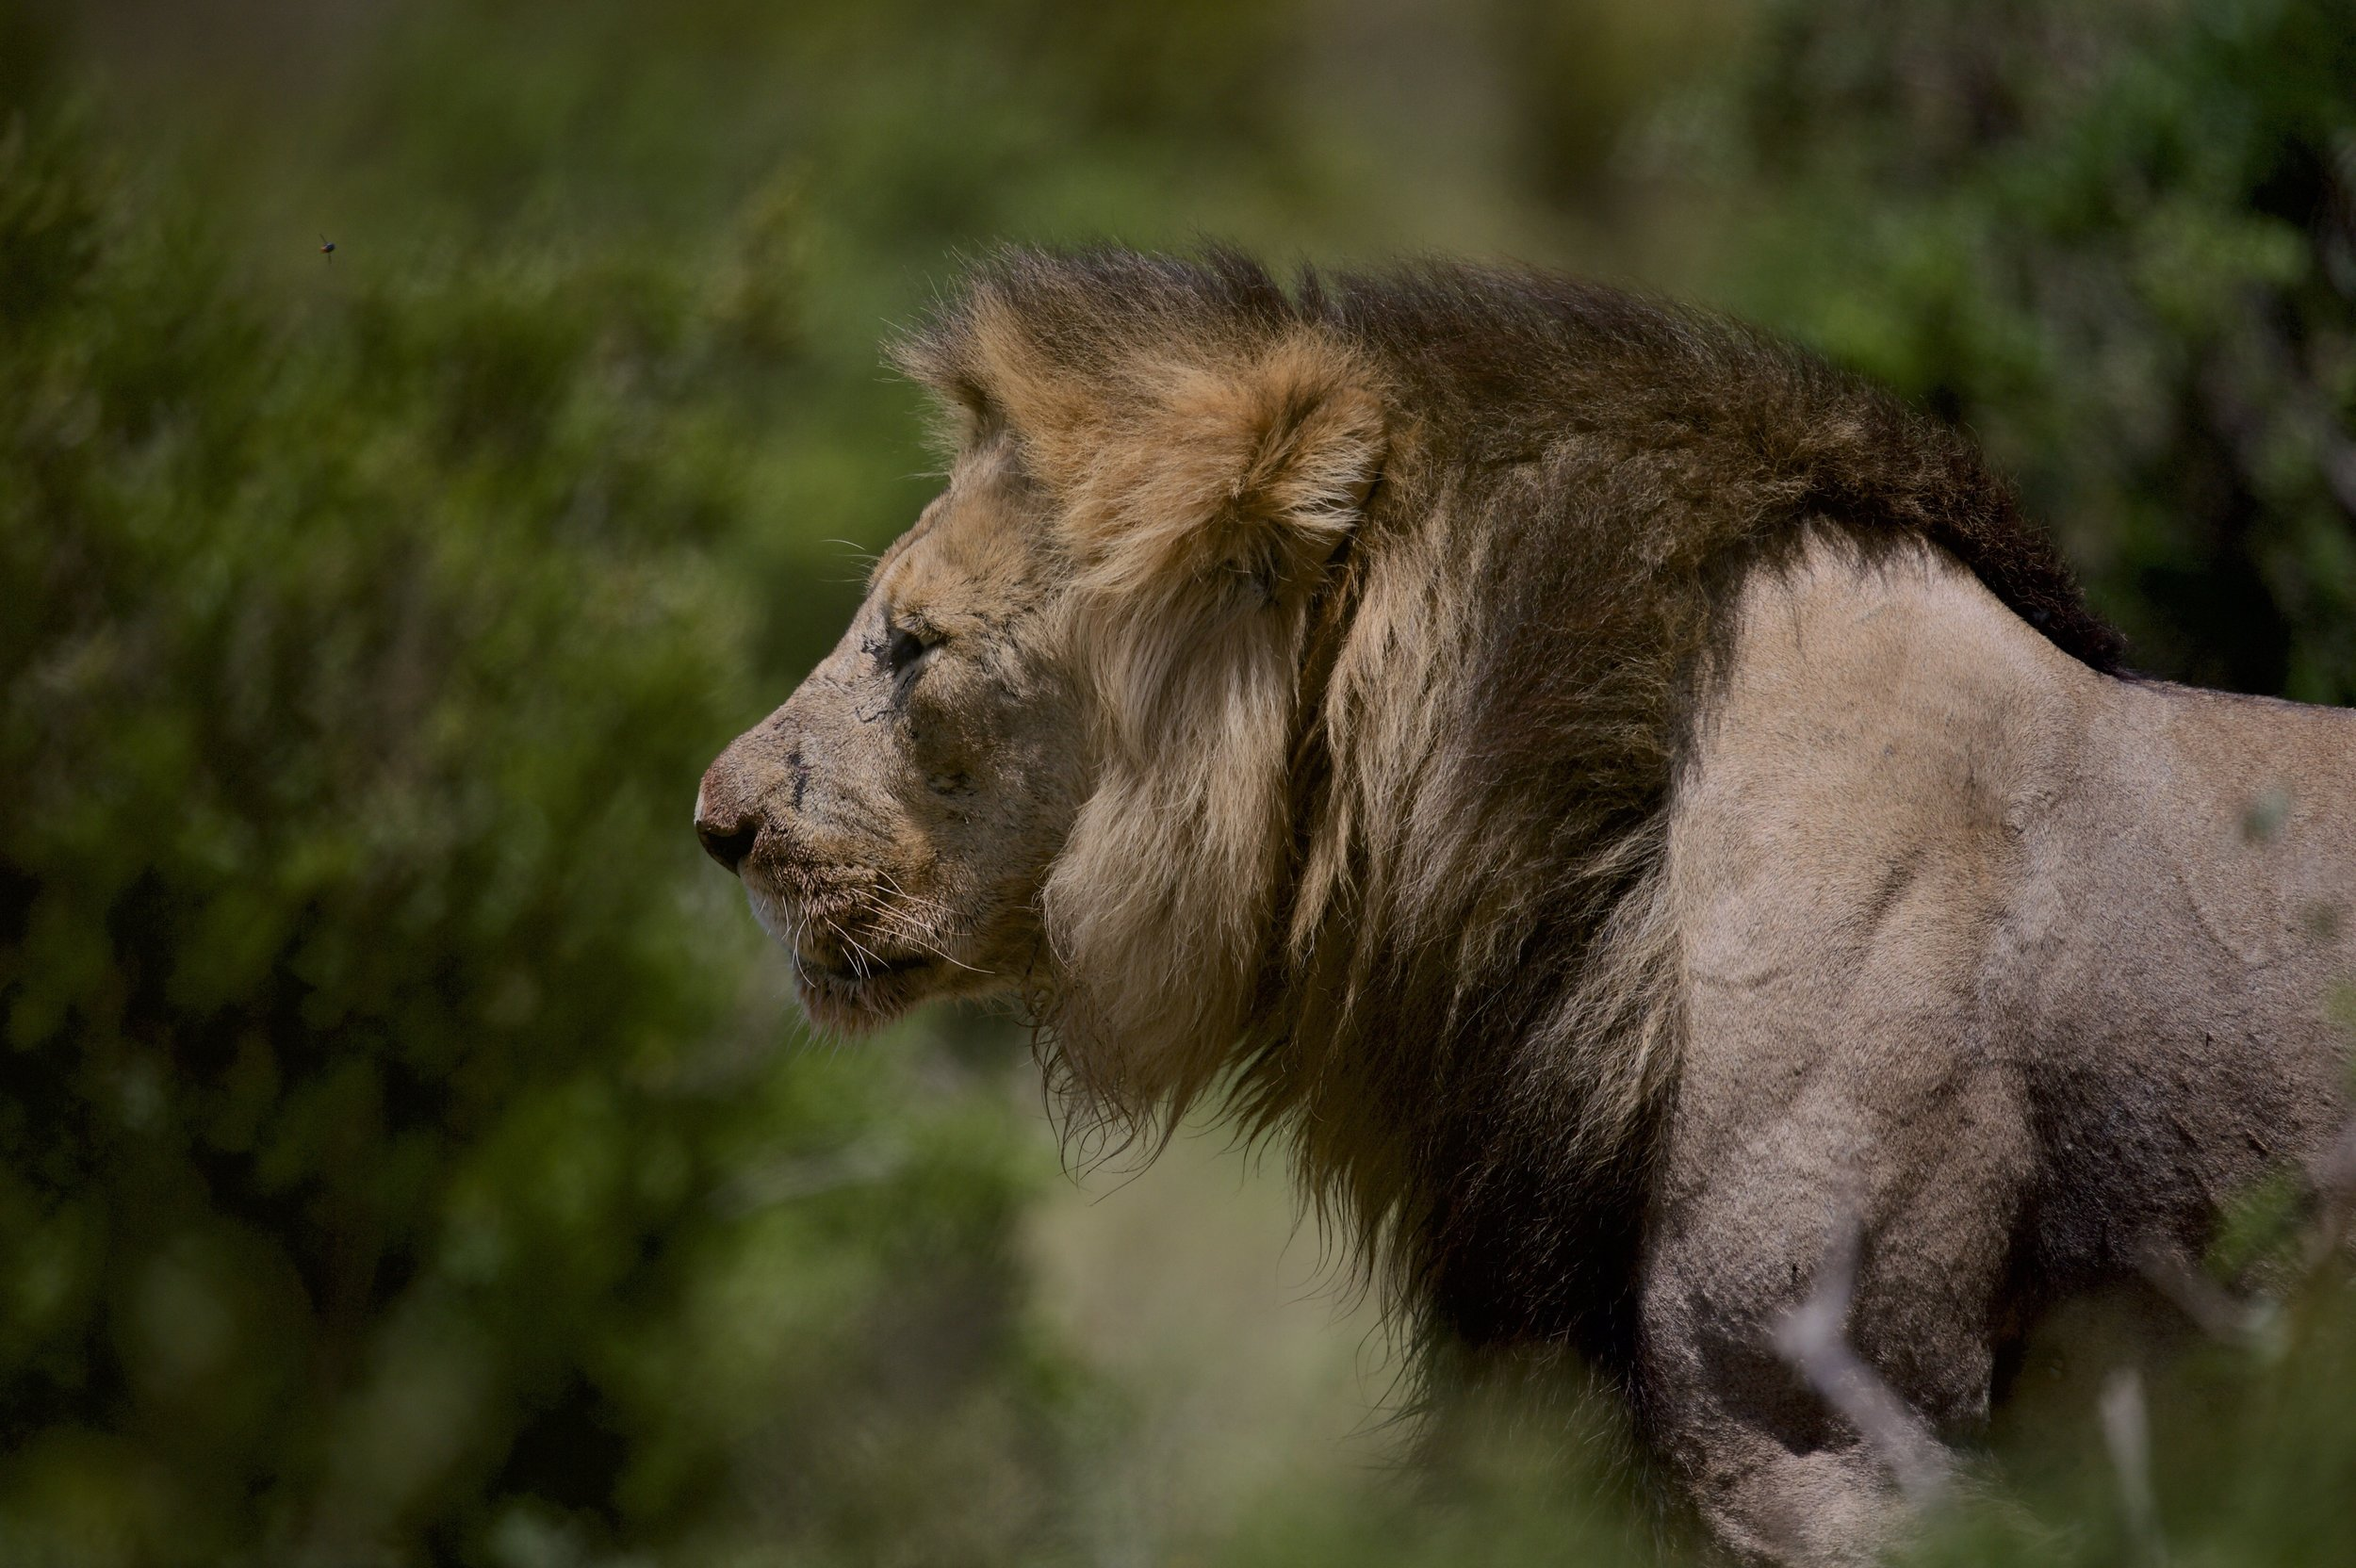 Lion in South Africa. Nikon Df + 600mm at f/4 and ISO 100